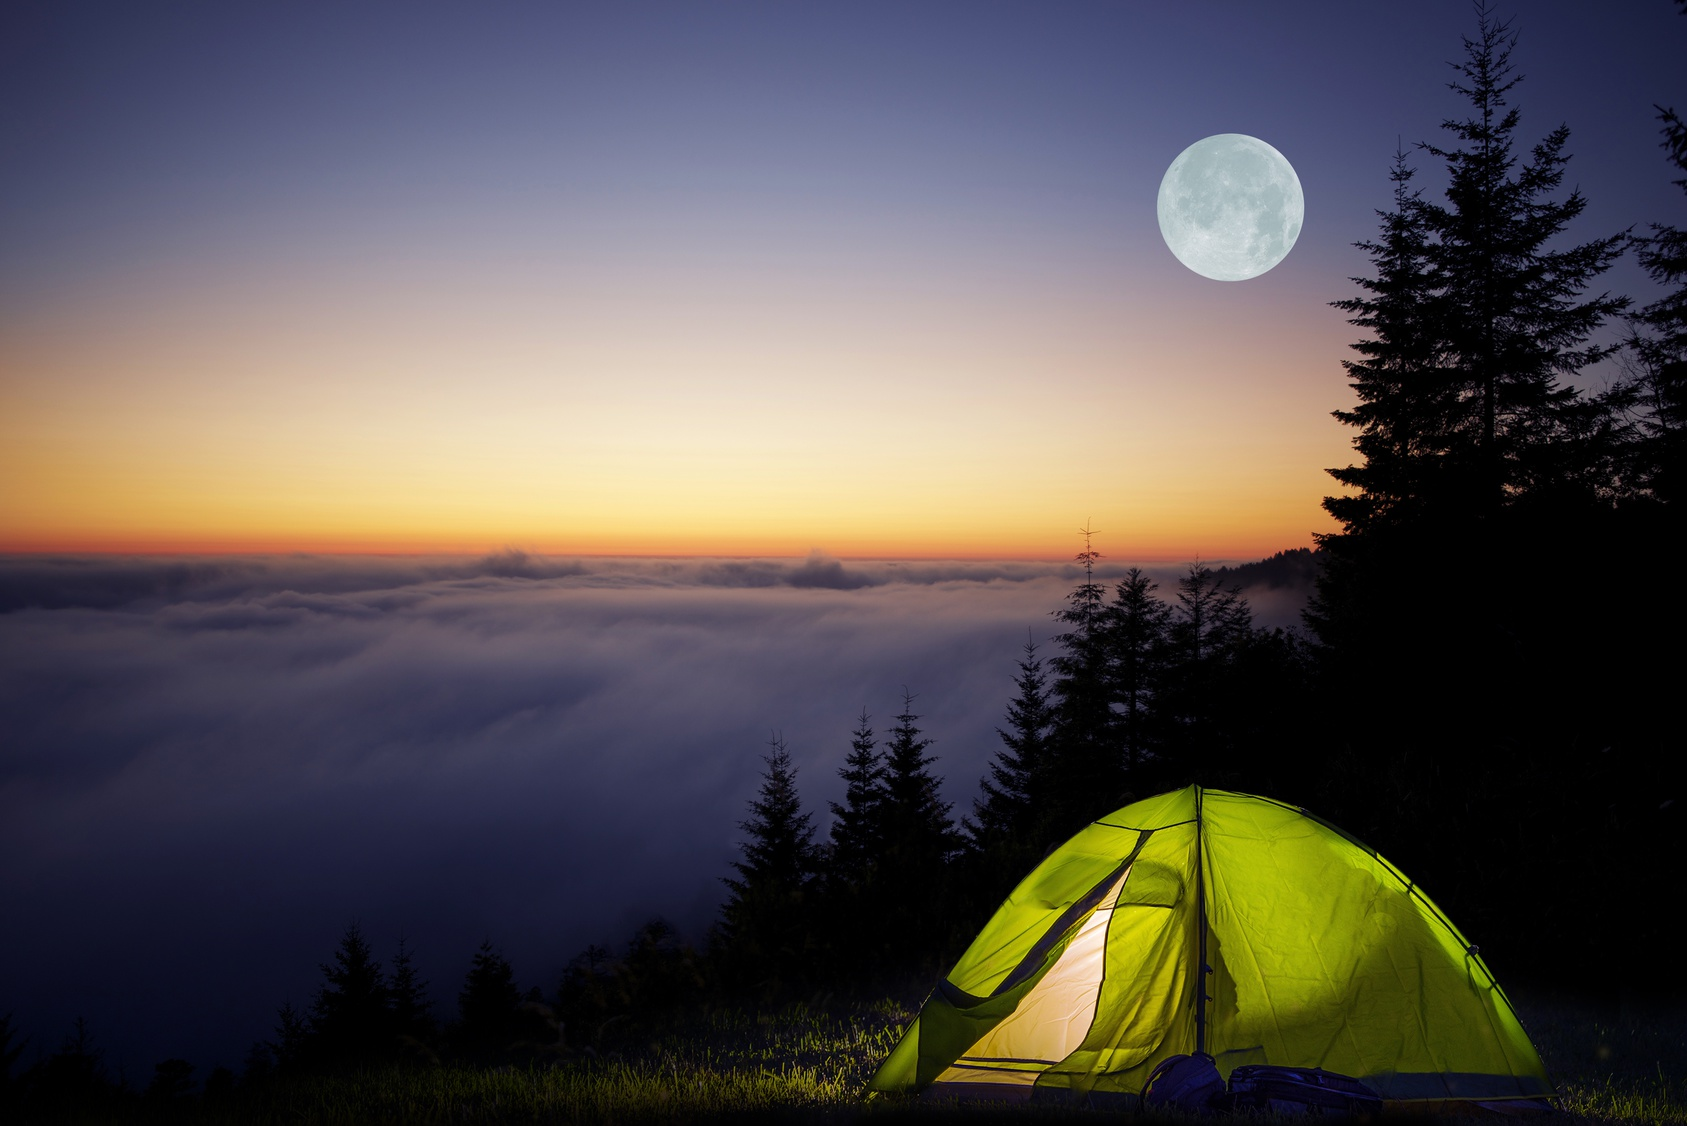 5 Camping Tent Waterproofing Tips to Stay Dry All Season